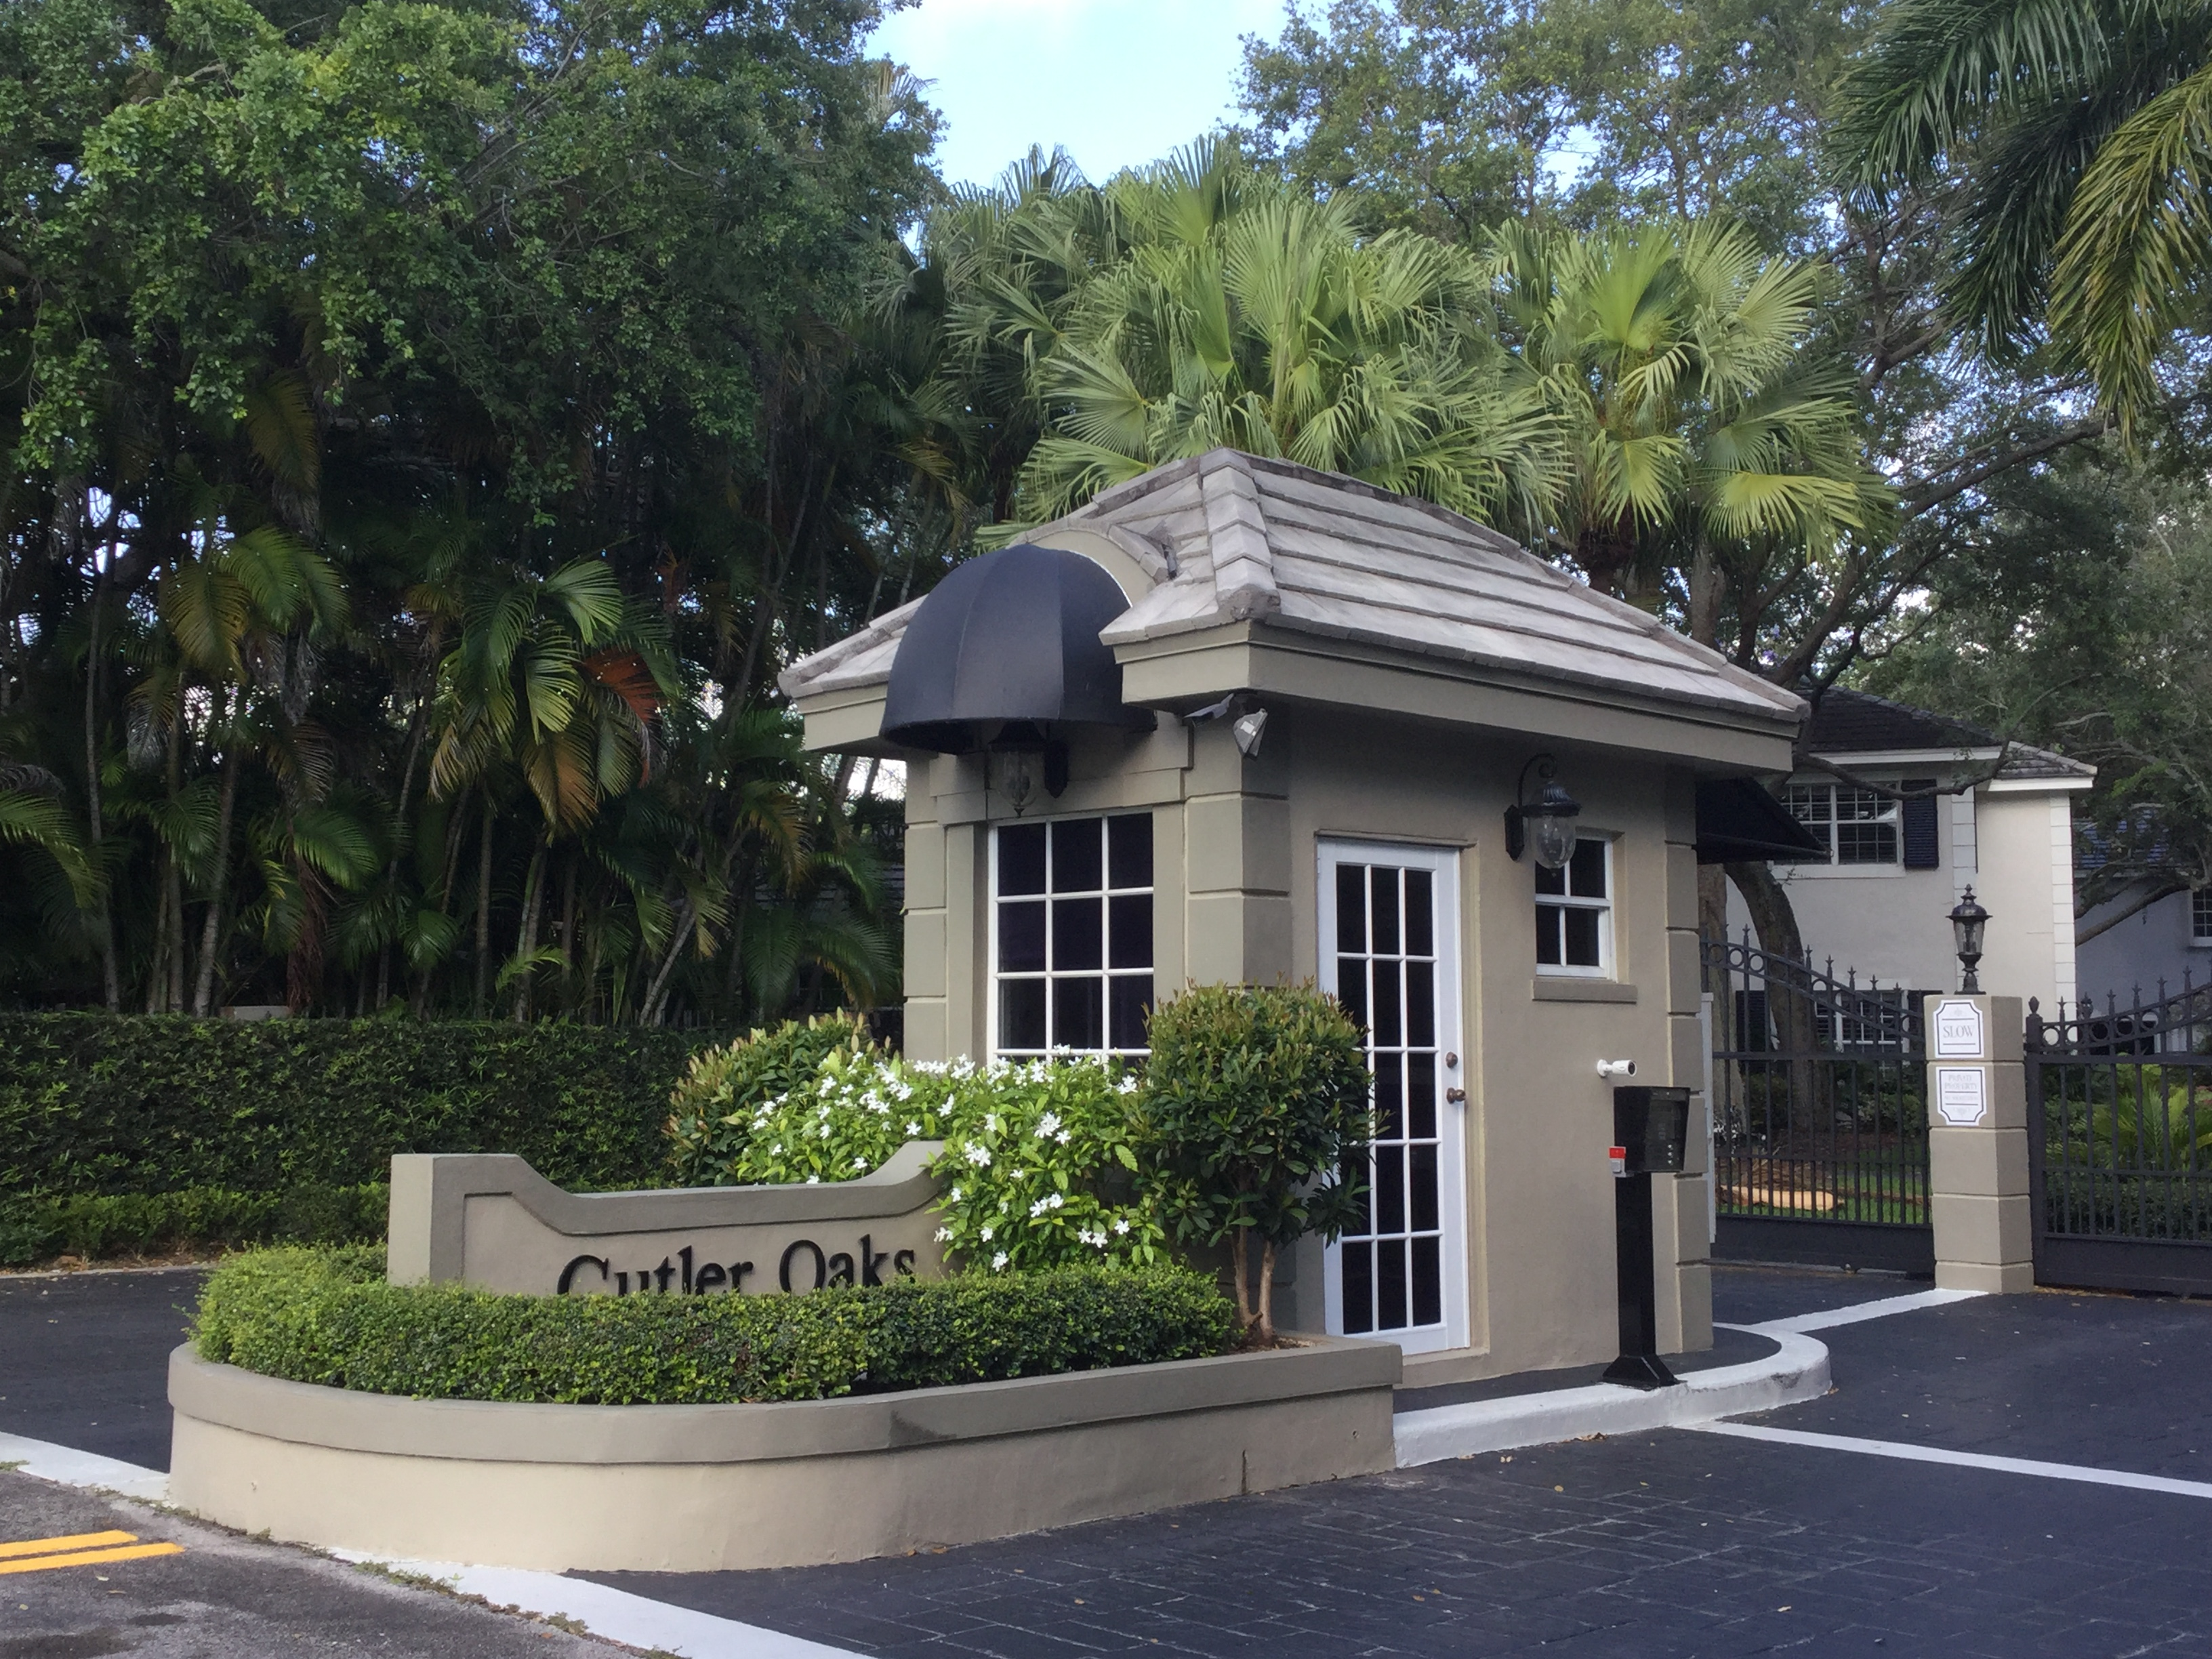 Cutler Oaks Estates, Gated community in Palmetto Bay, Fl